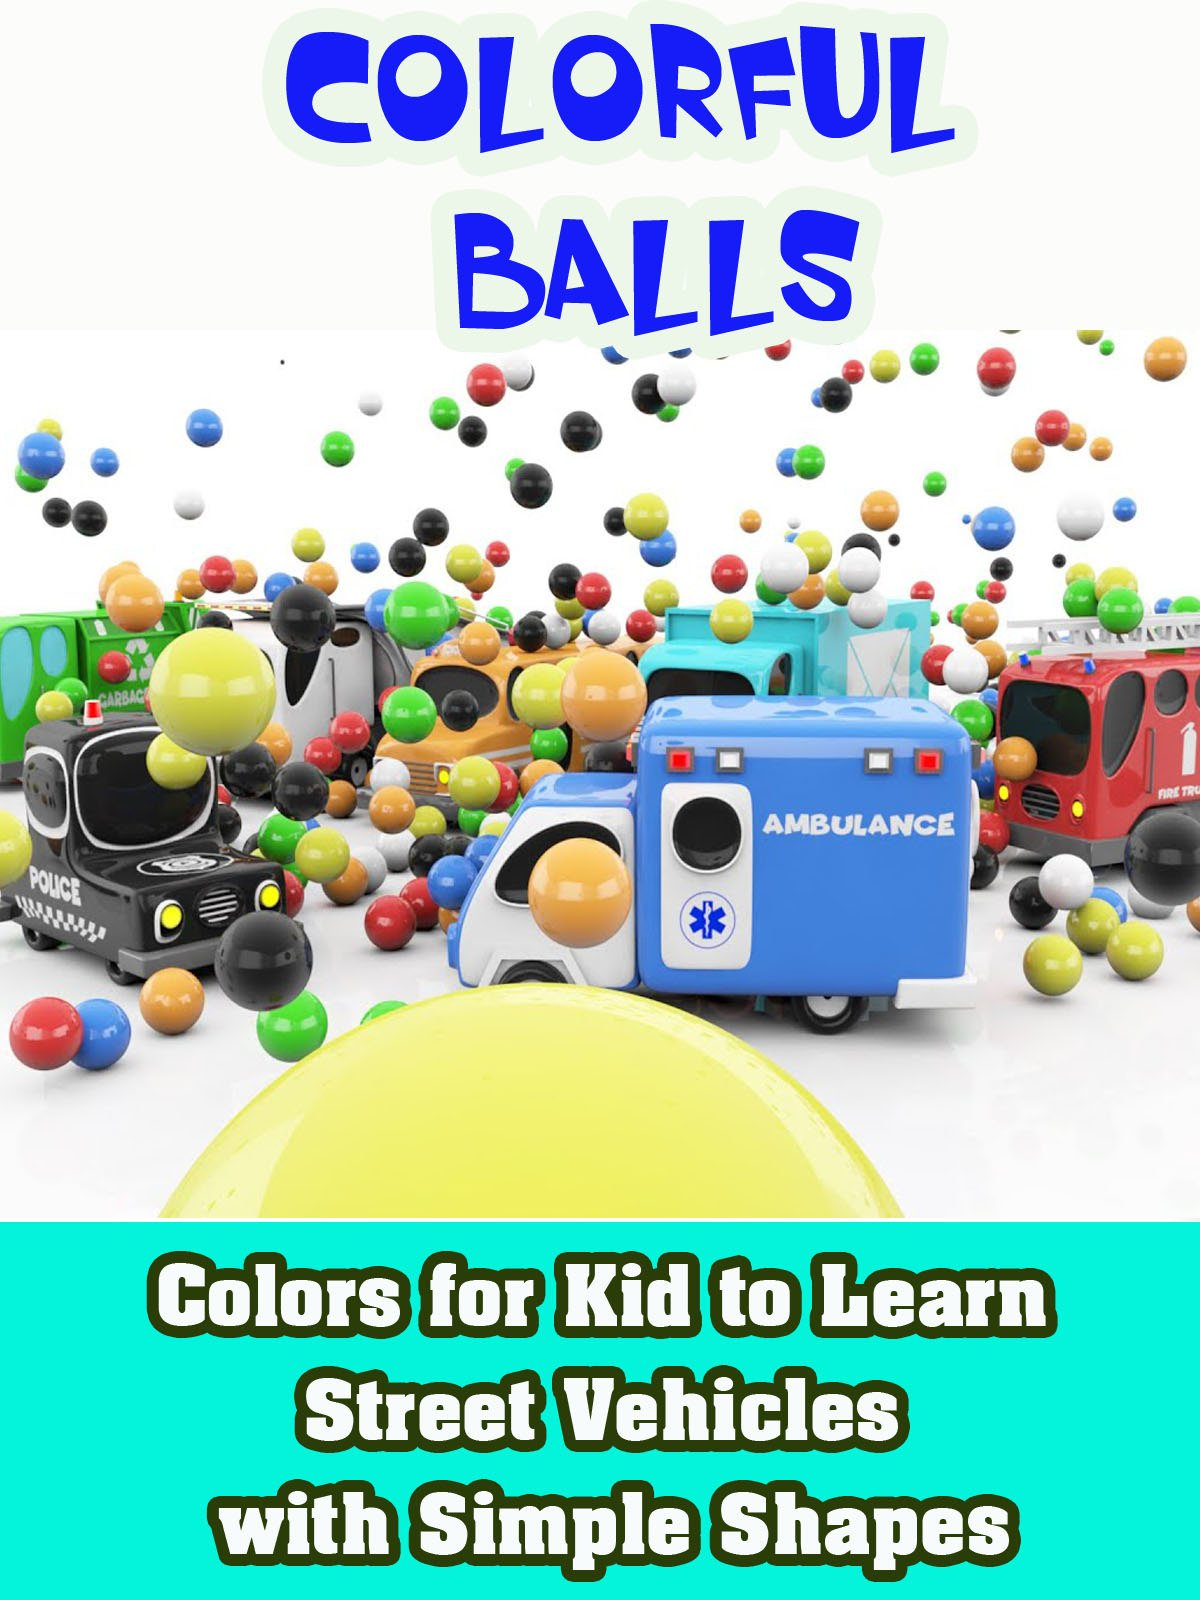 Colors for Kid to Learn Street Vehicles with Simple Shapes